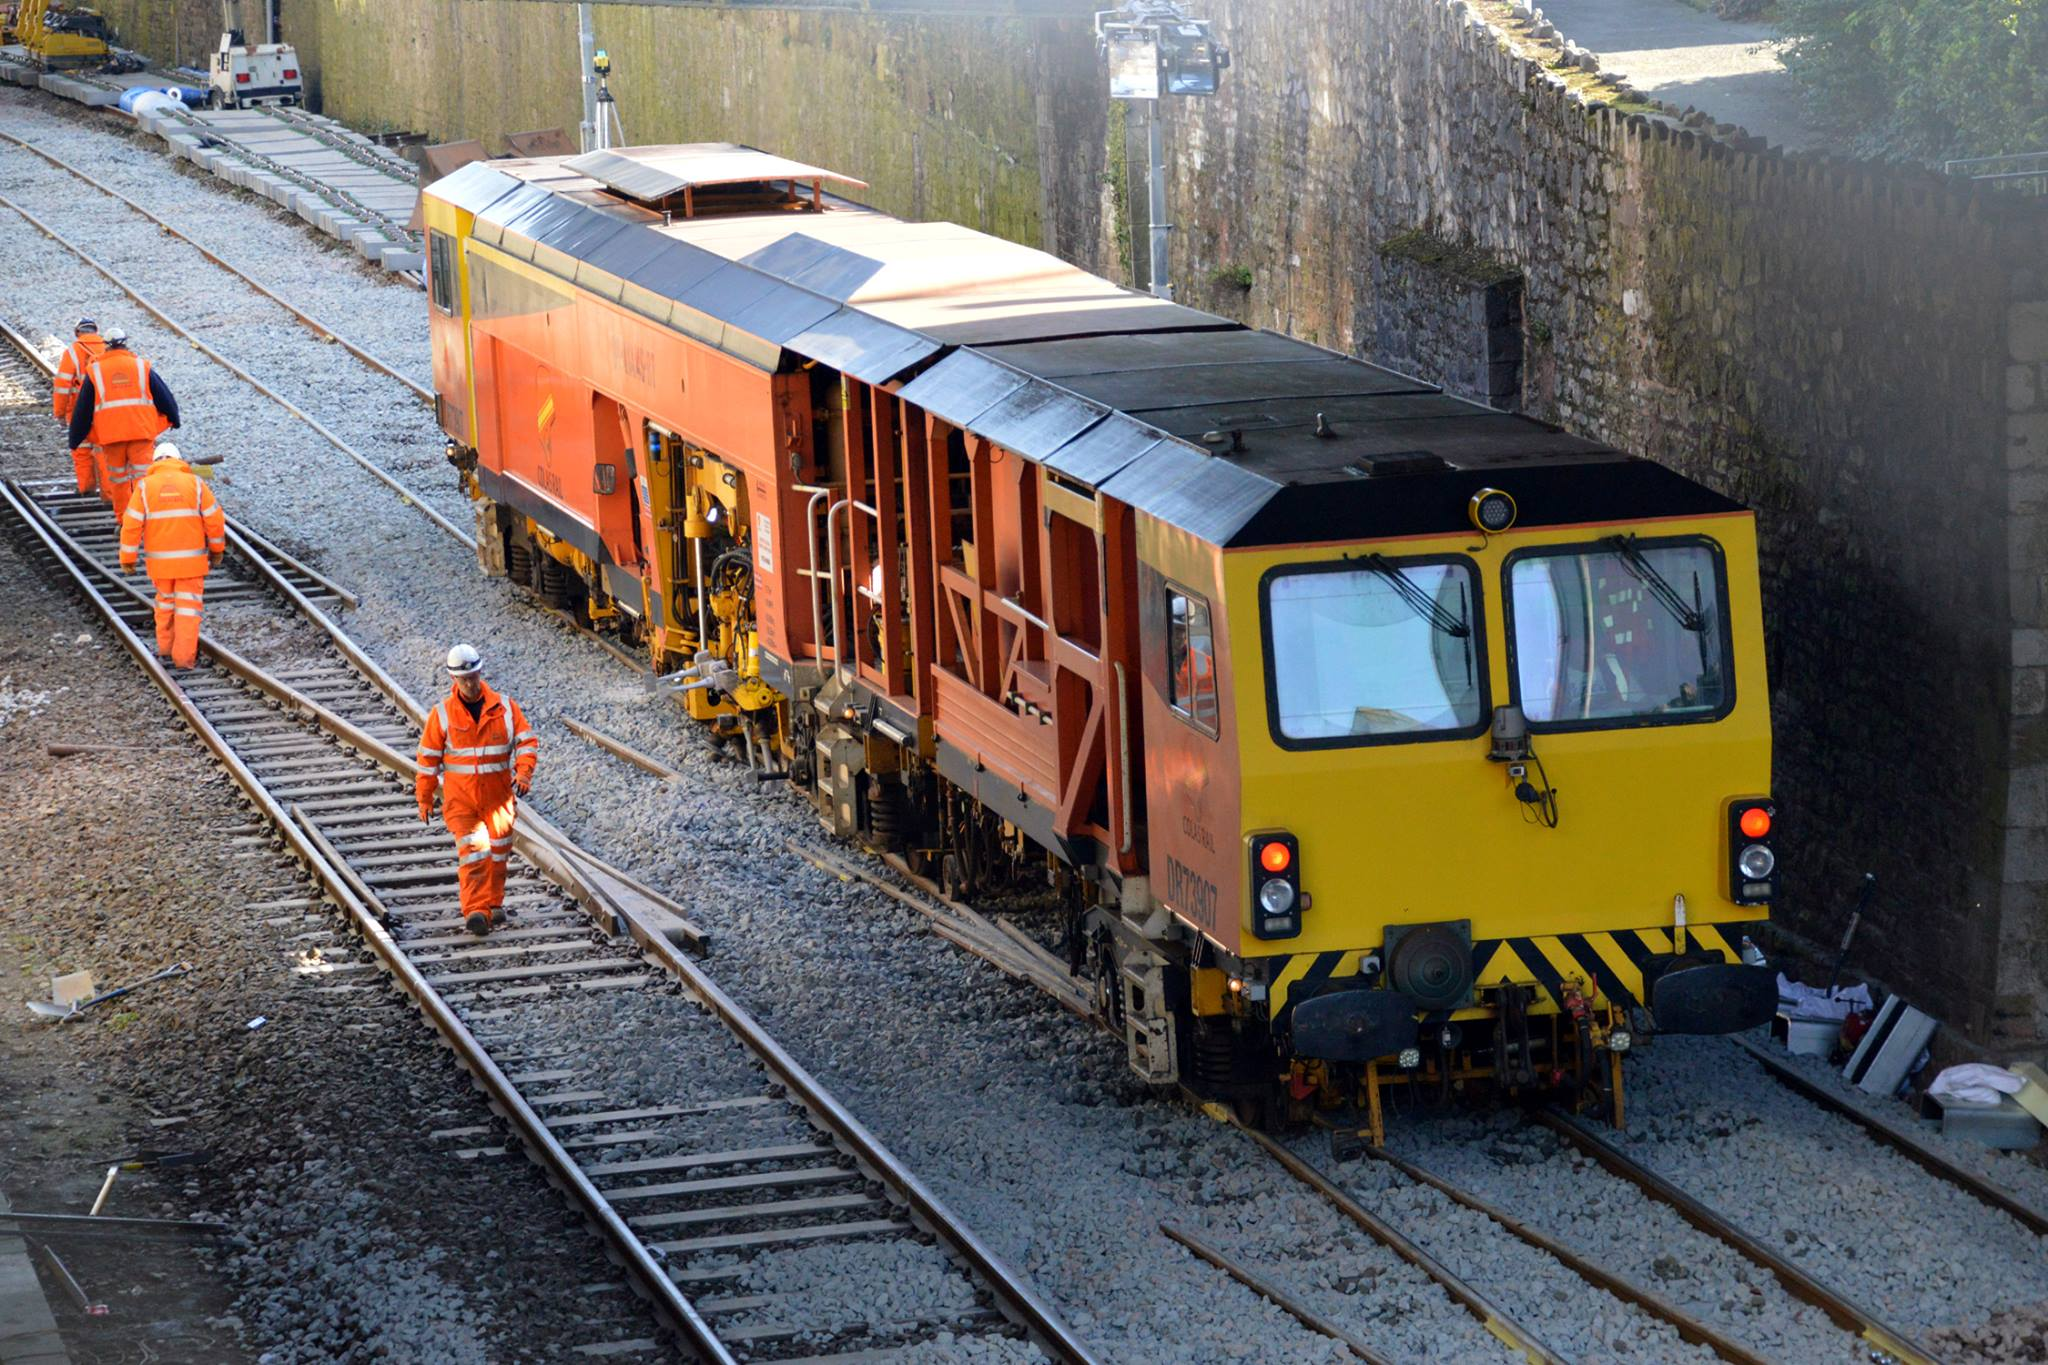 Plymouth Herald – Pictures show why Plymouth's rail link is being cut off for two weekends